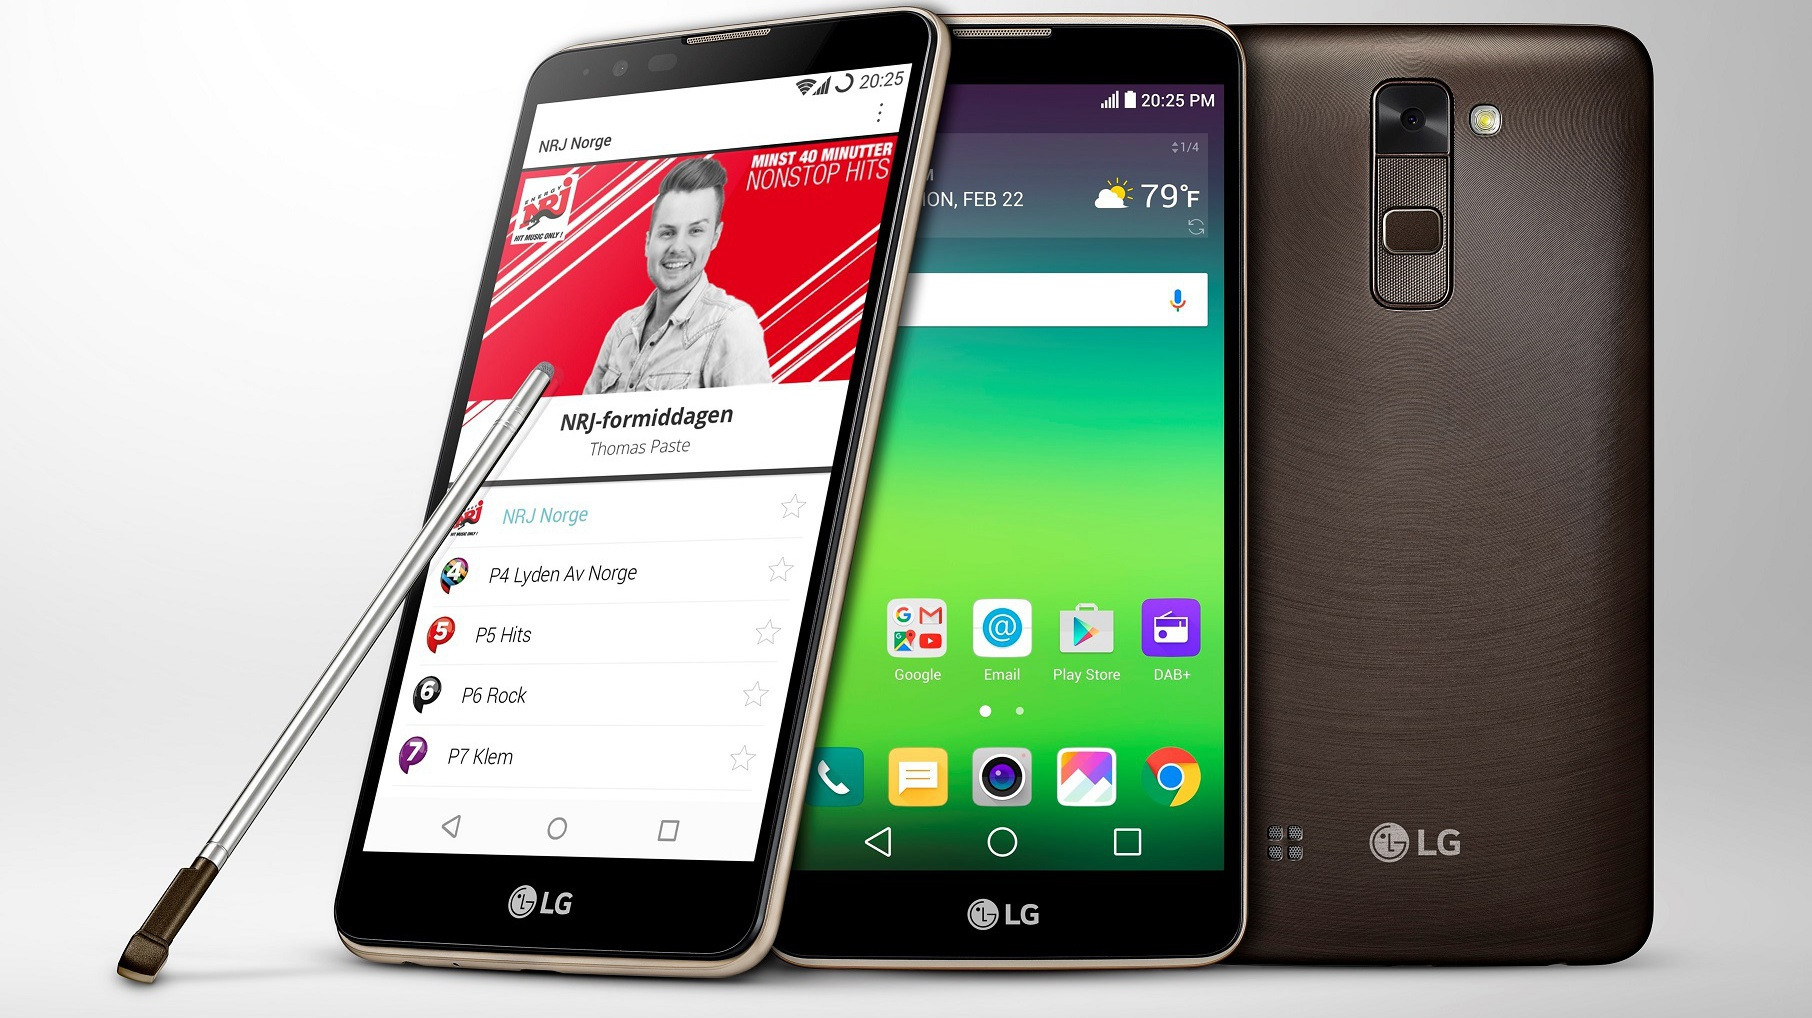 lg stylus 2 smartphone mit digitalradio dab und stift heise online. Black Bedroom Furniture Sets. Home Design Ideas